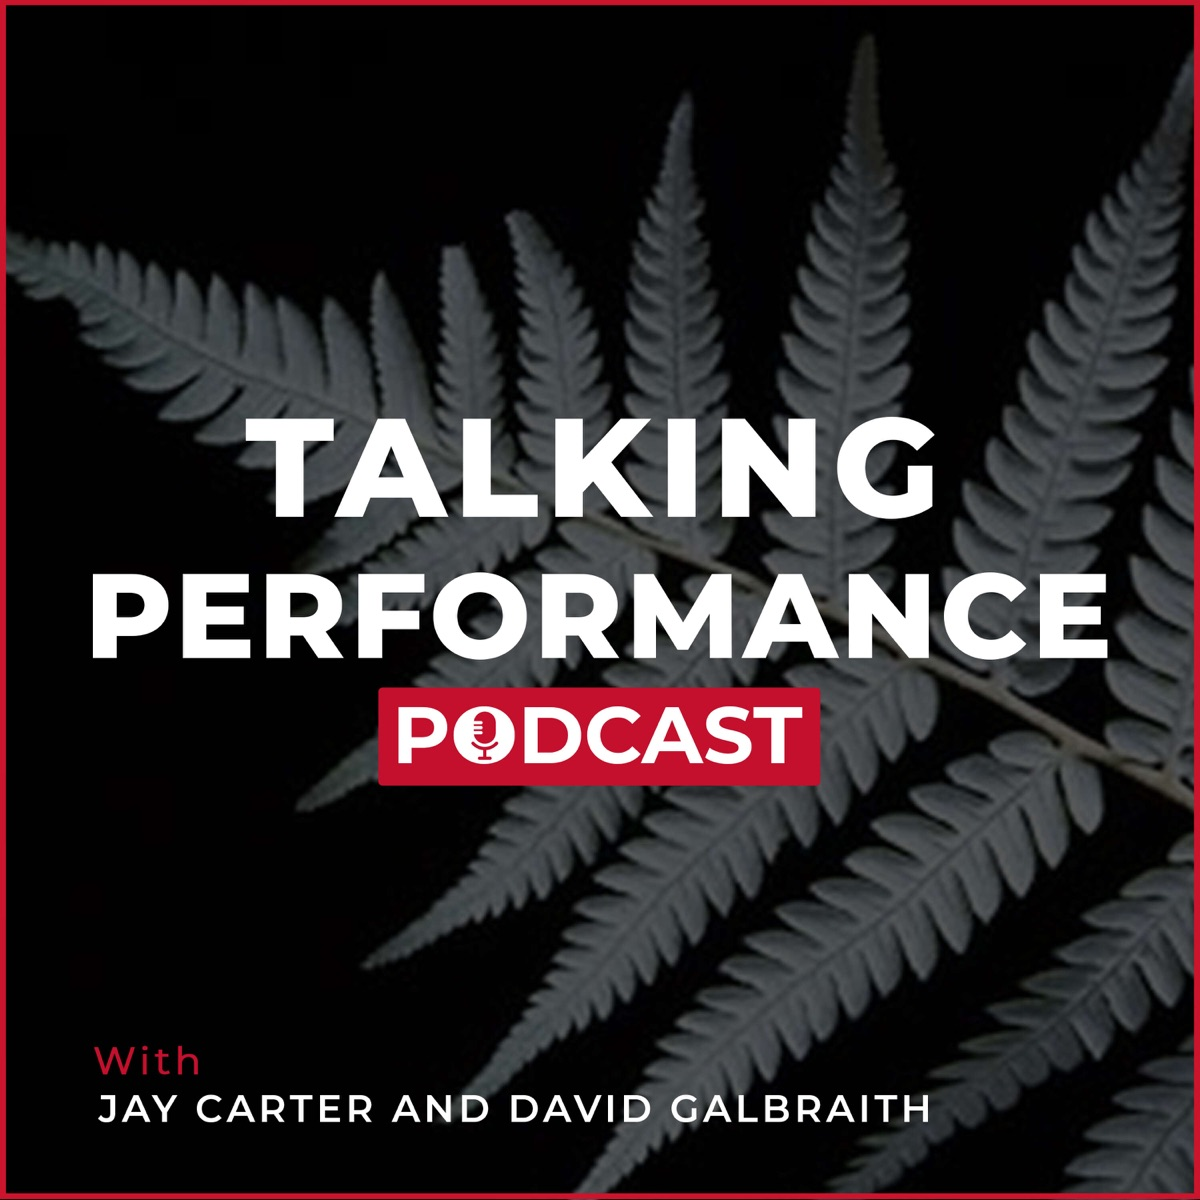 Talking Performance Episode 33 with Special Guest Tony Readings